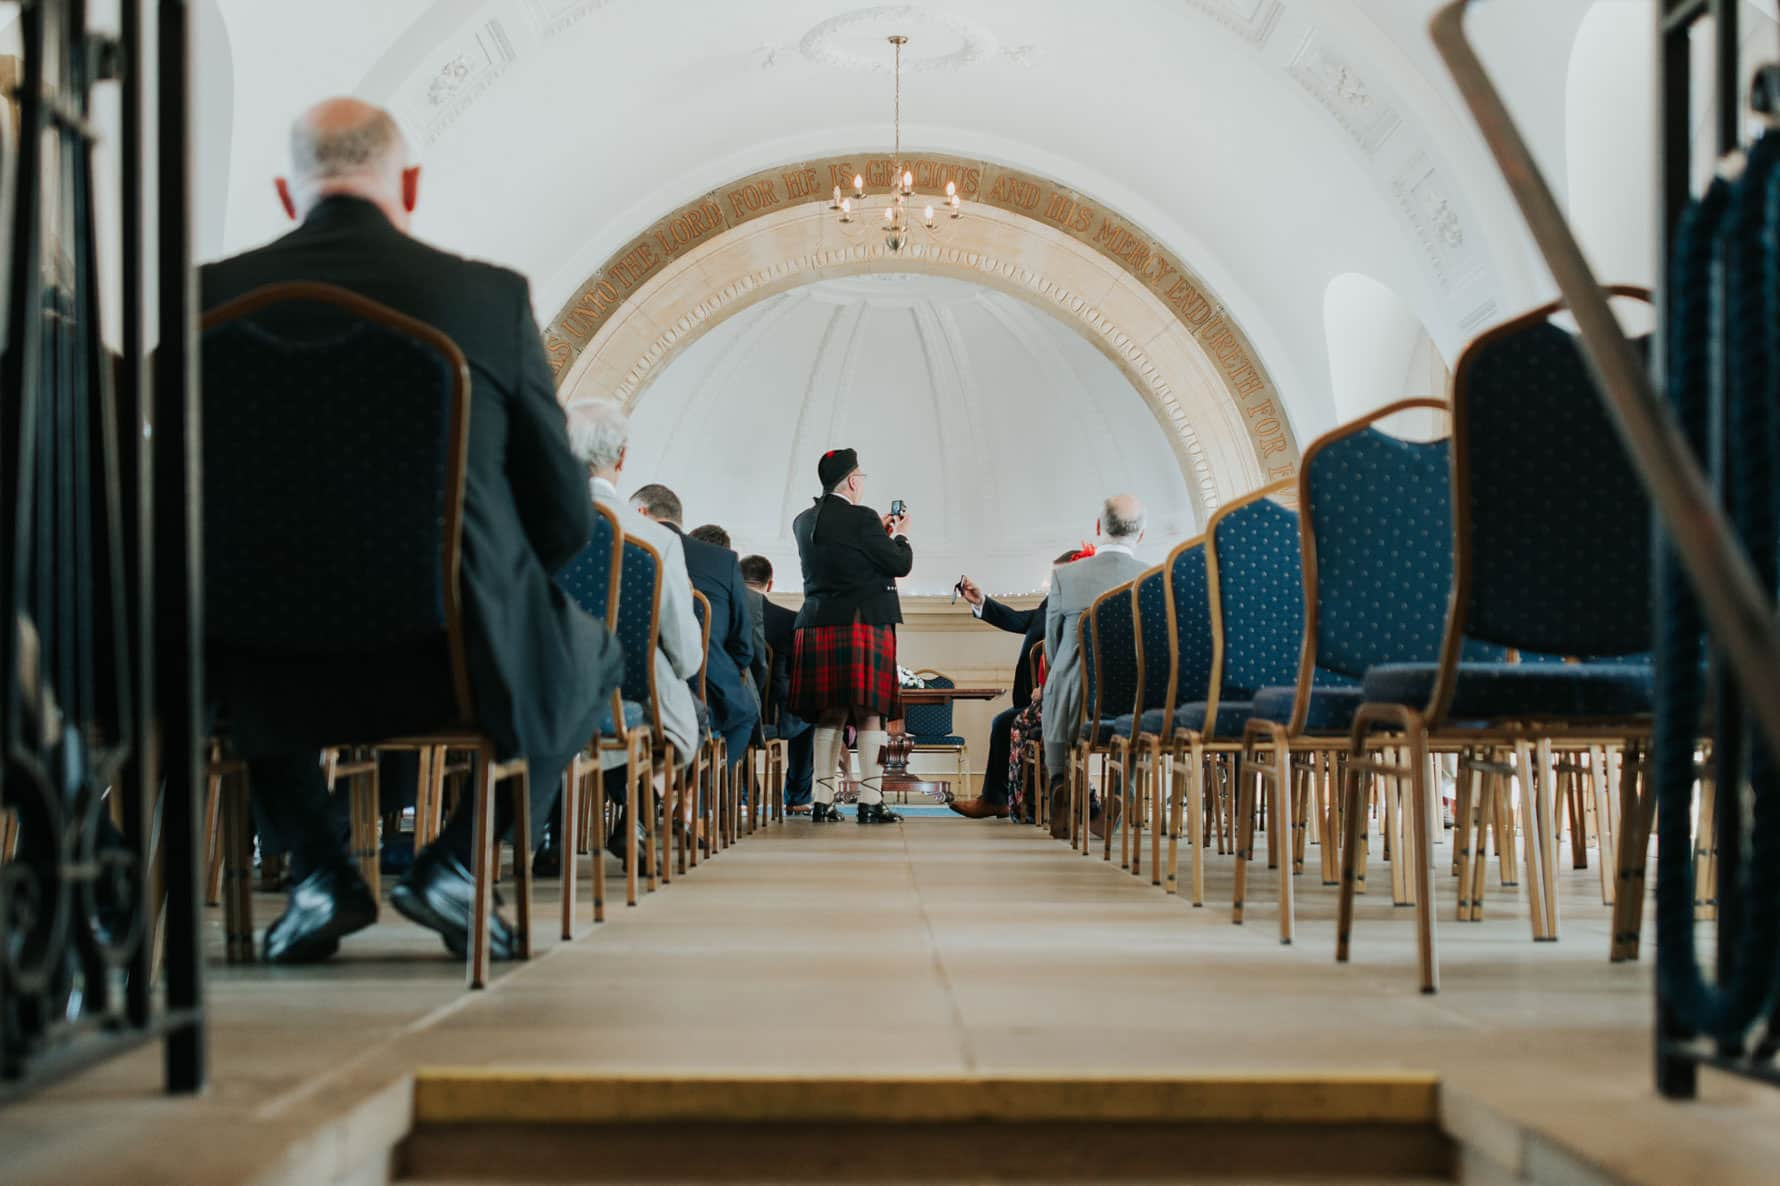 man in a kilt inside the church